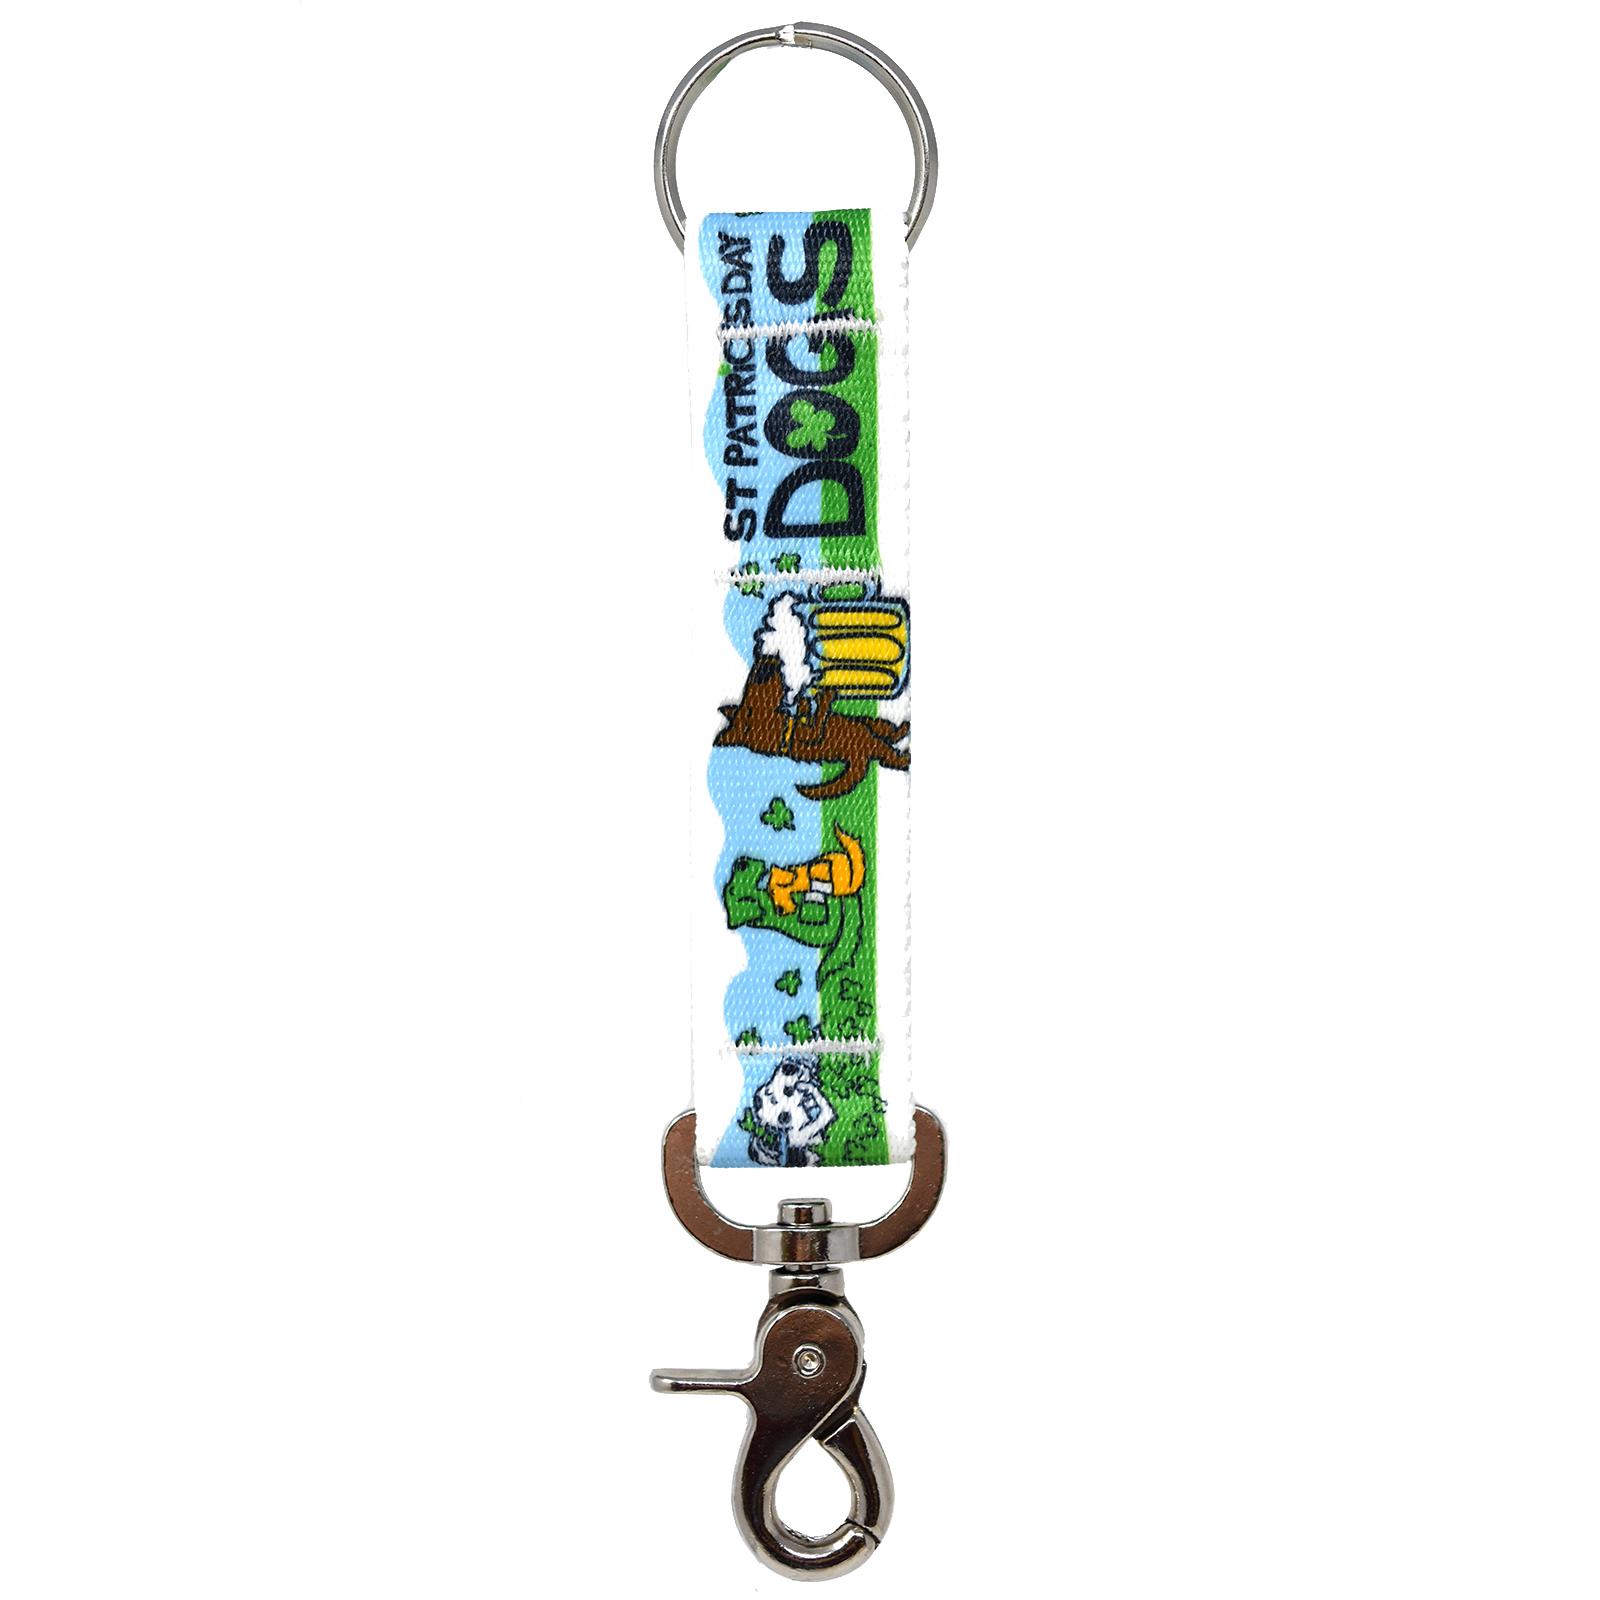 St Patricks Day Dogs keychain